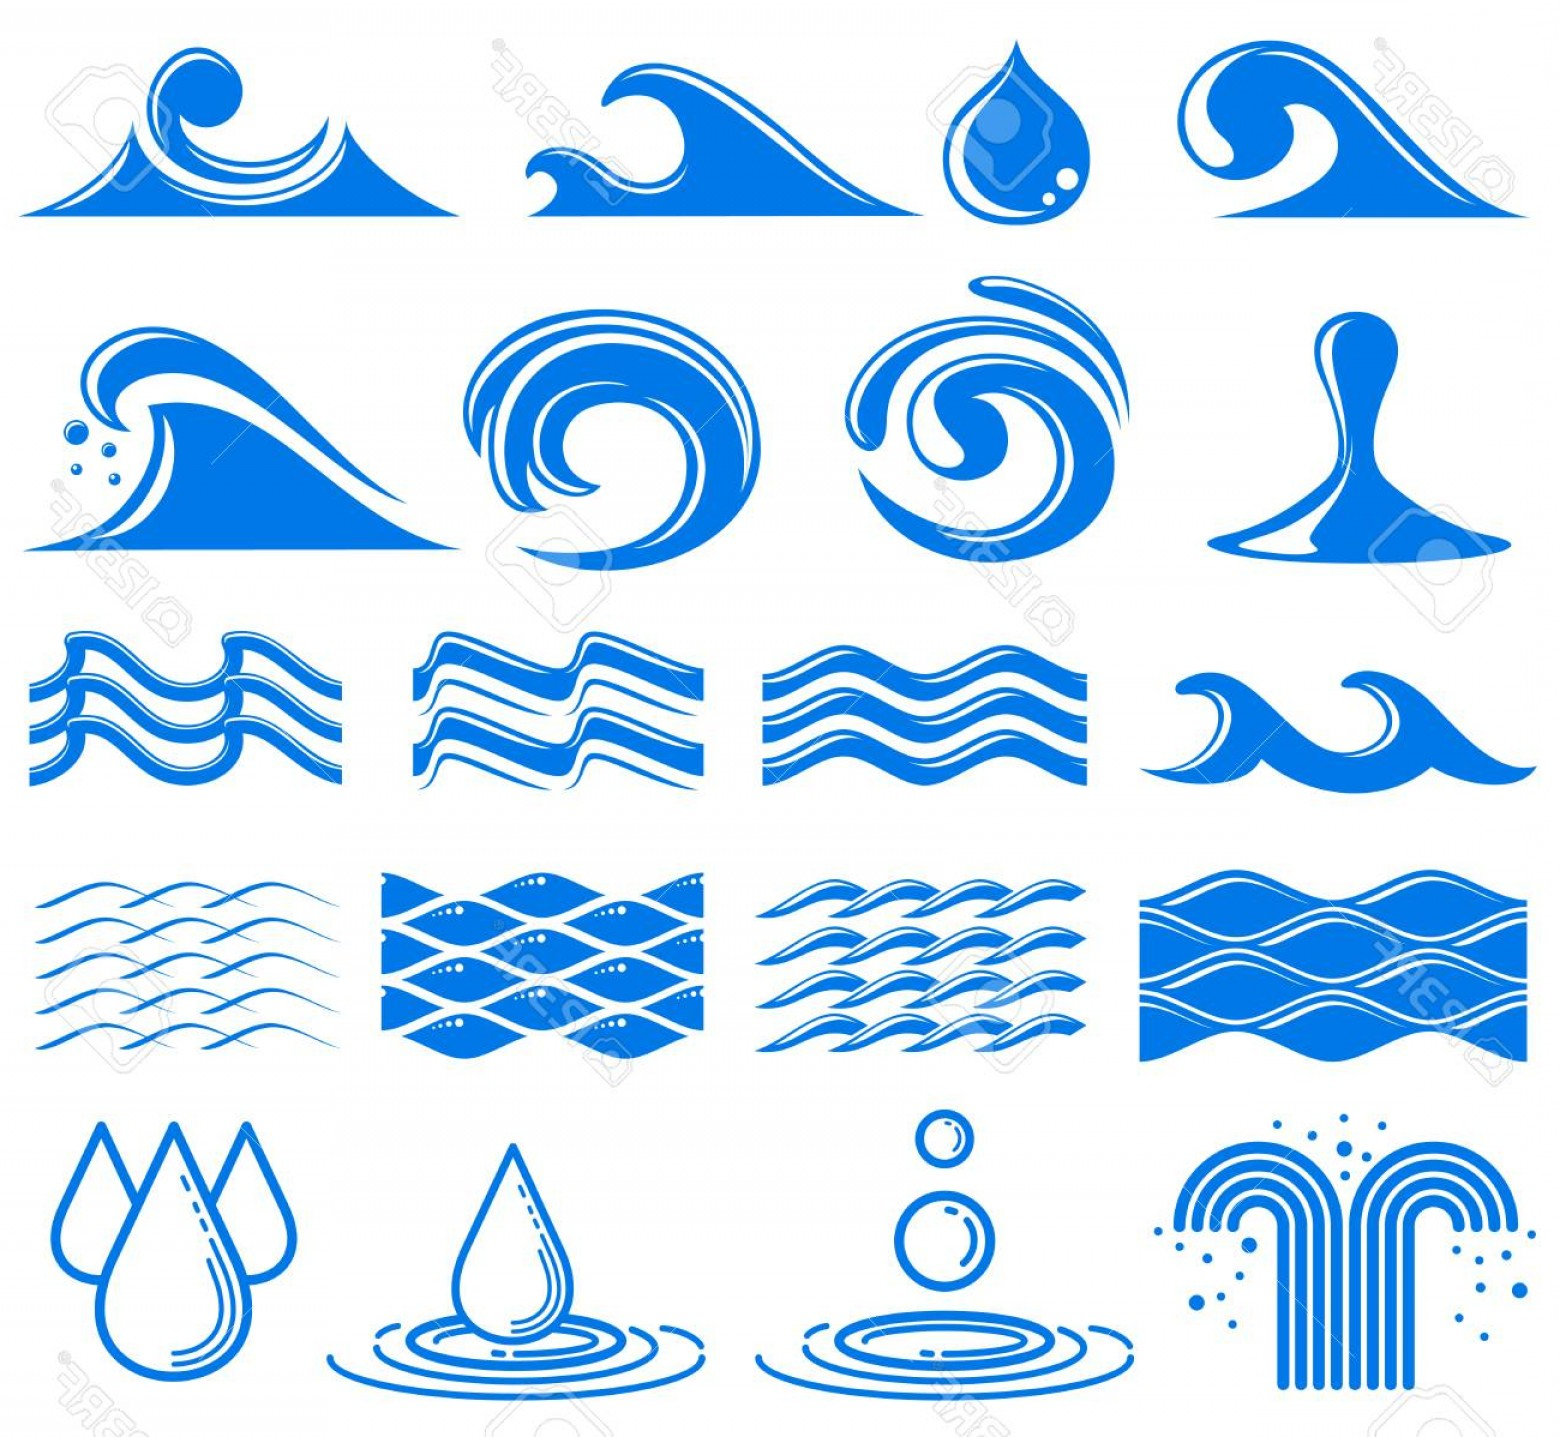 Vector Clip Art Of Water: Photostock Vector Waves And Water Vector Symbols Set Of Water Logos Wave And Fountain Illustration Of Water Element